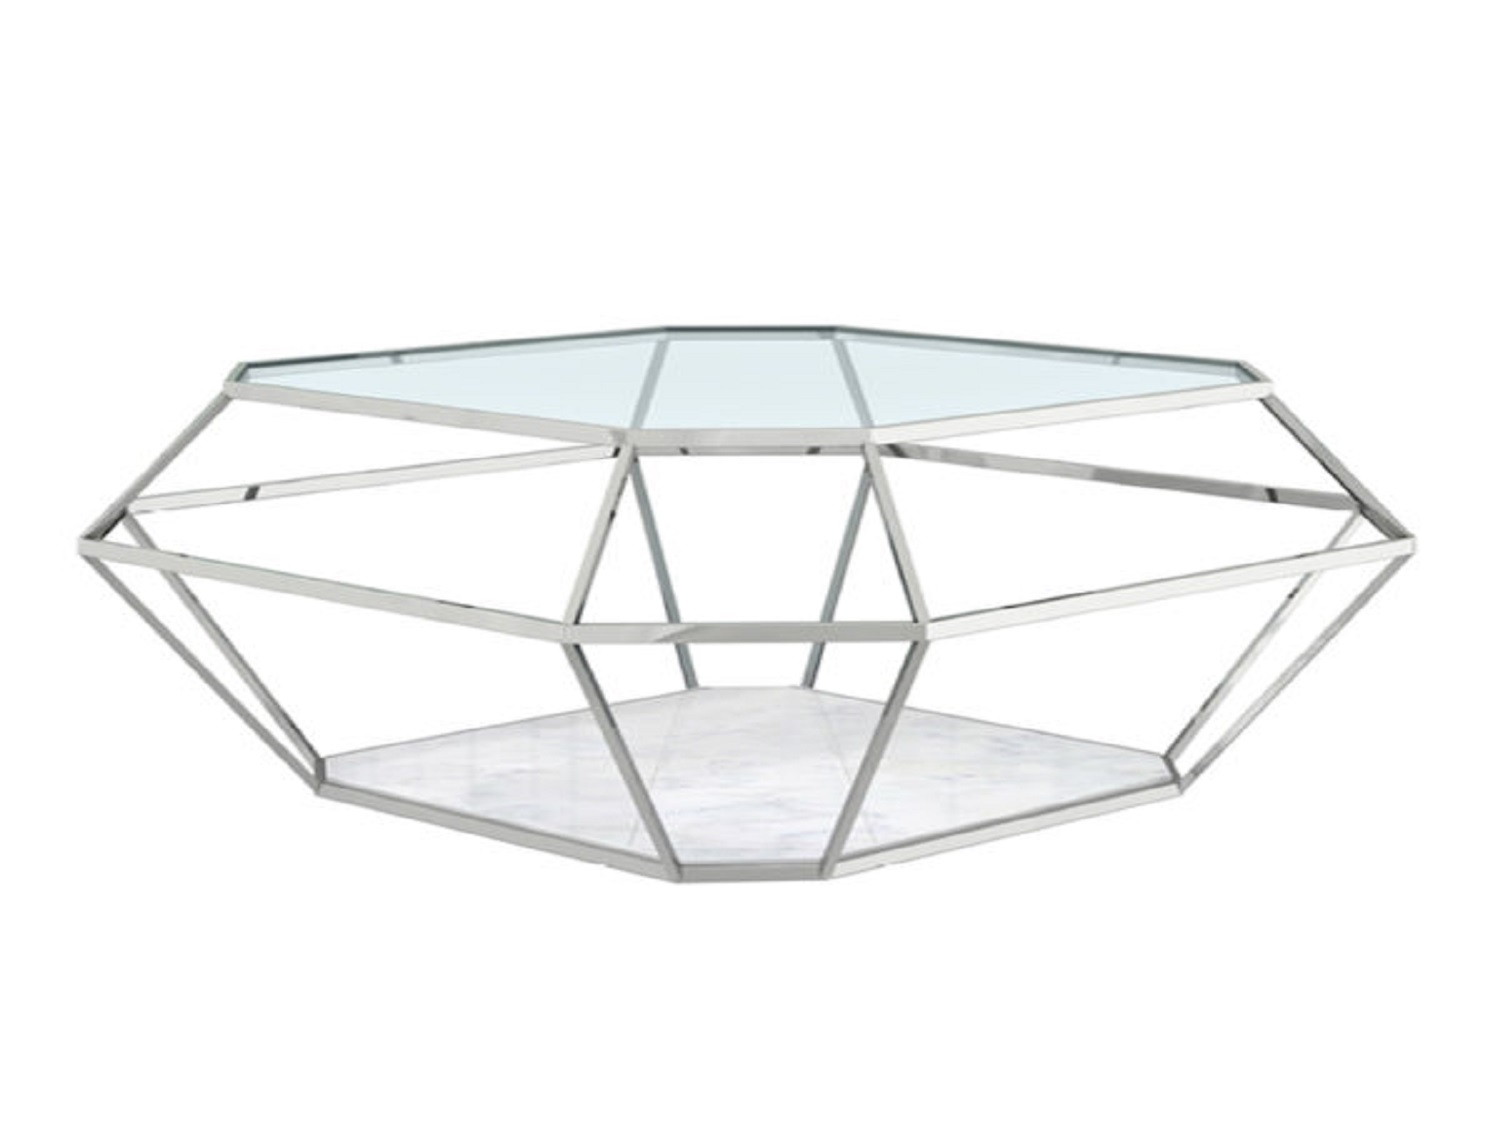 Venus Coffee Table, GY-CT-7739, Coffee Table by Midha Furniture to Brampton, Mississauga, Etobicoke, Toronto, Scraborough, Caledon, Oakville, Markham, Ajax, Pickering, Oshawa, Richmondhill, Kitchener, Hamilton and GTA area